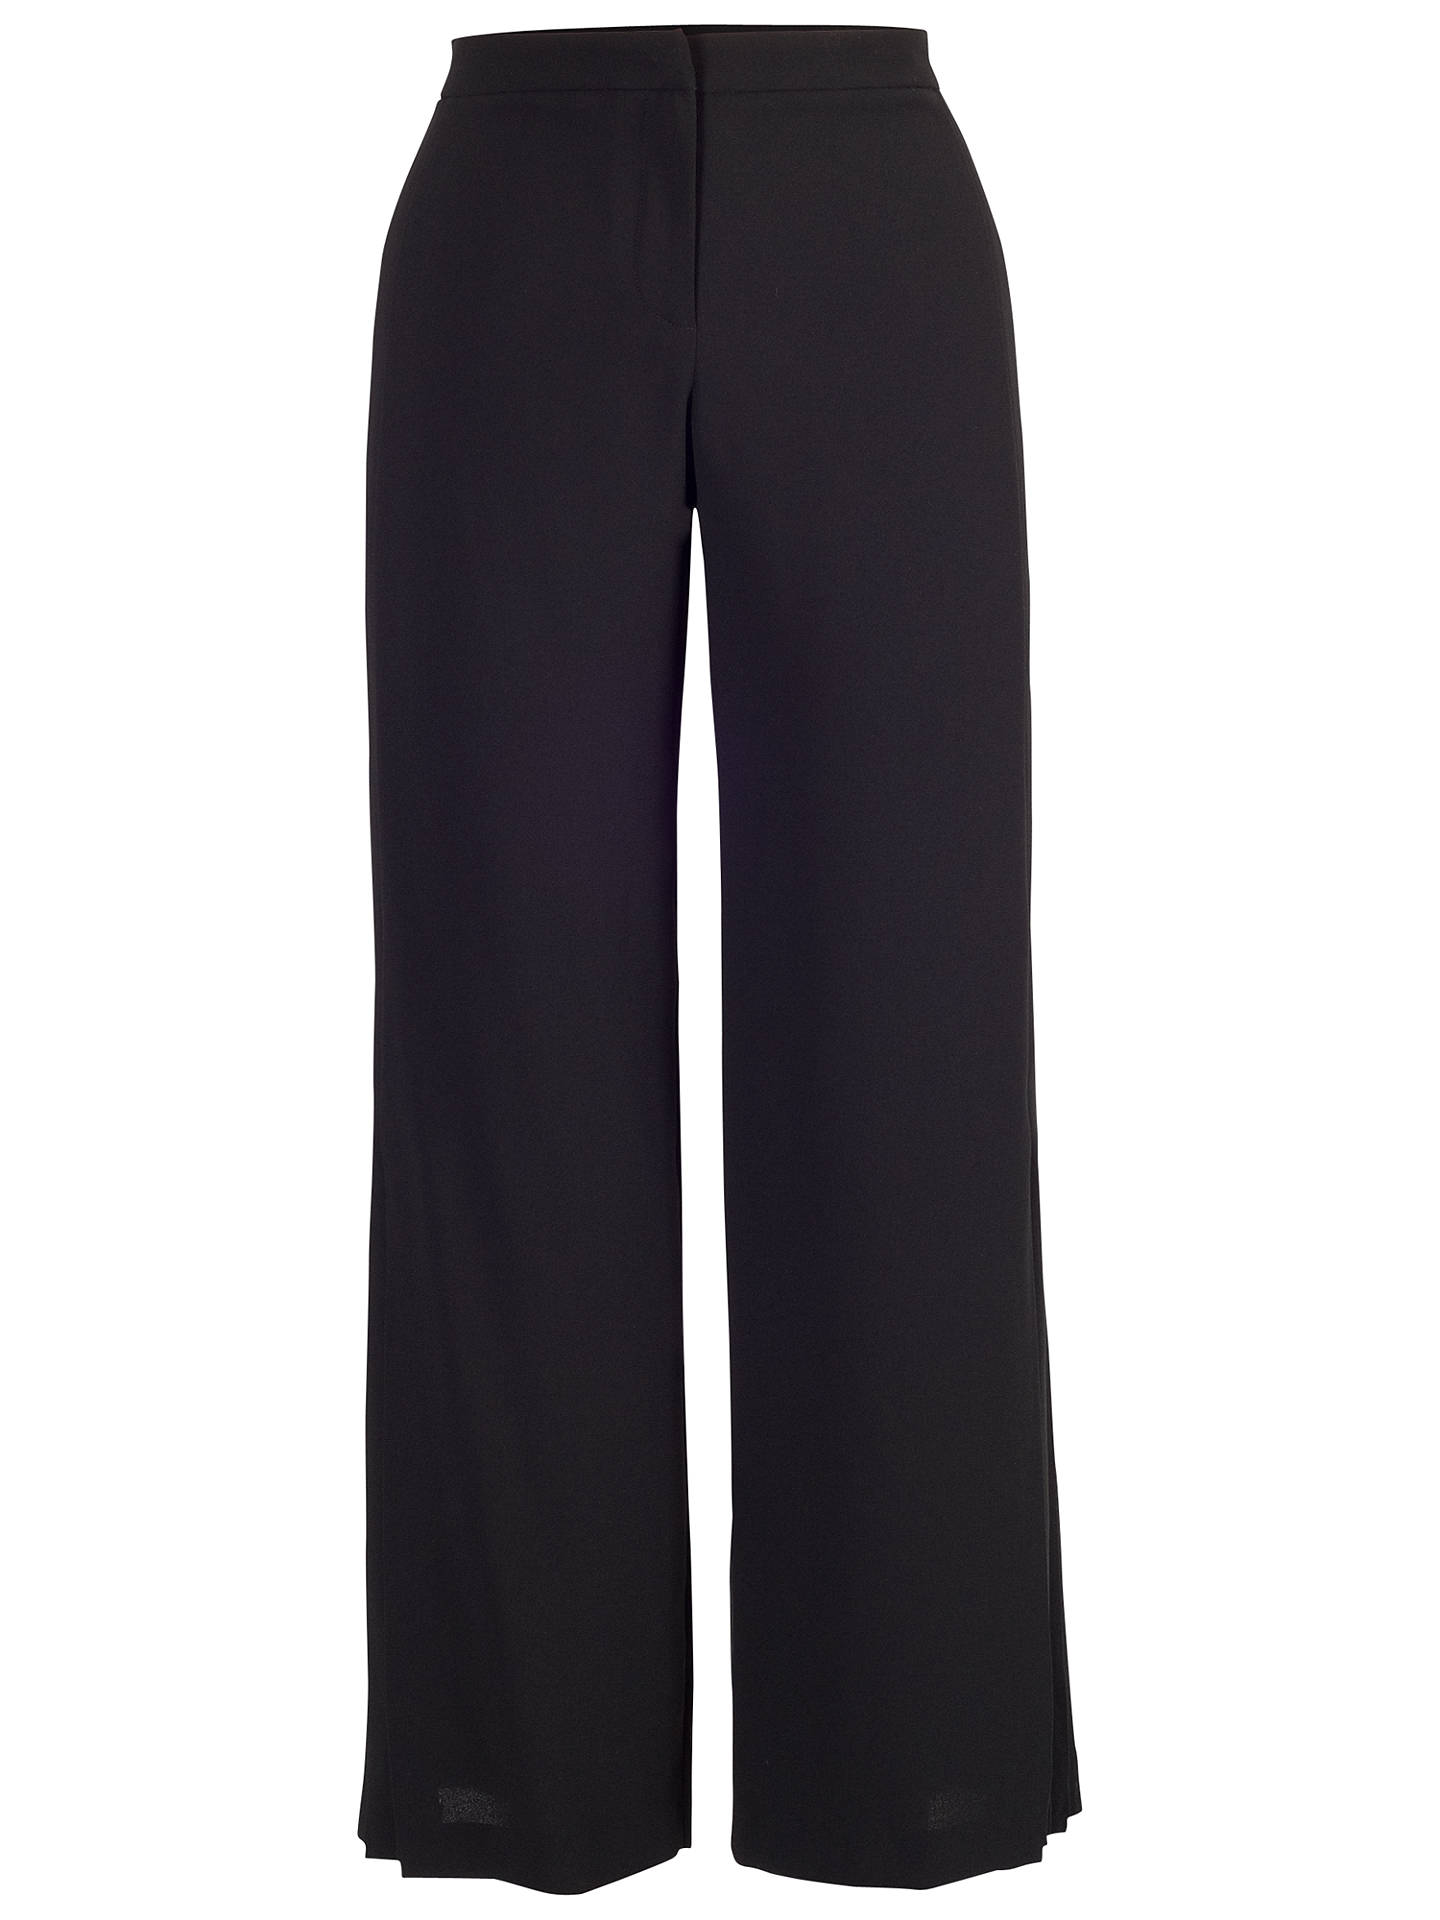 Buy Chesca Pleated Trim Trousers, Black, 12 Online at johnlewis.com